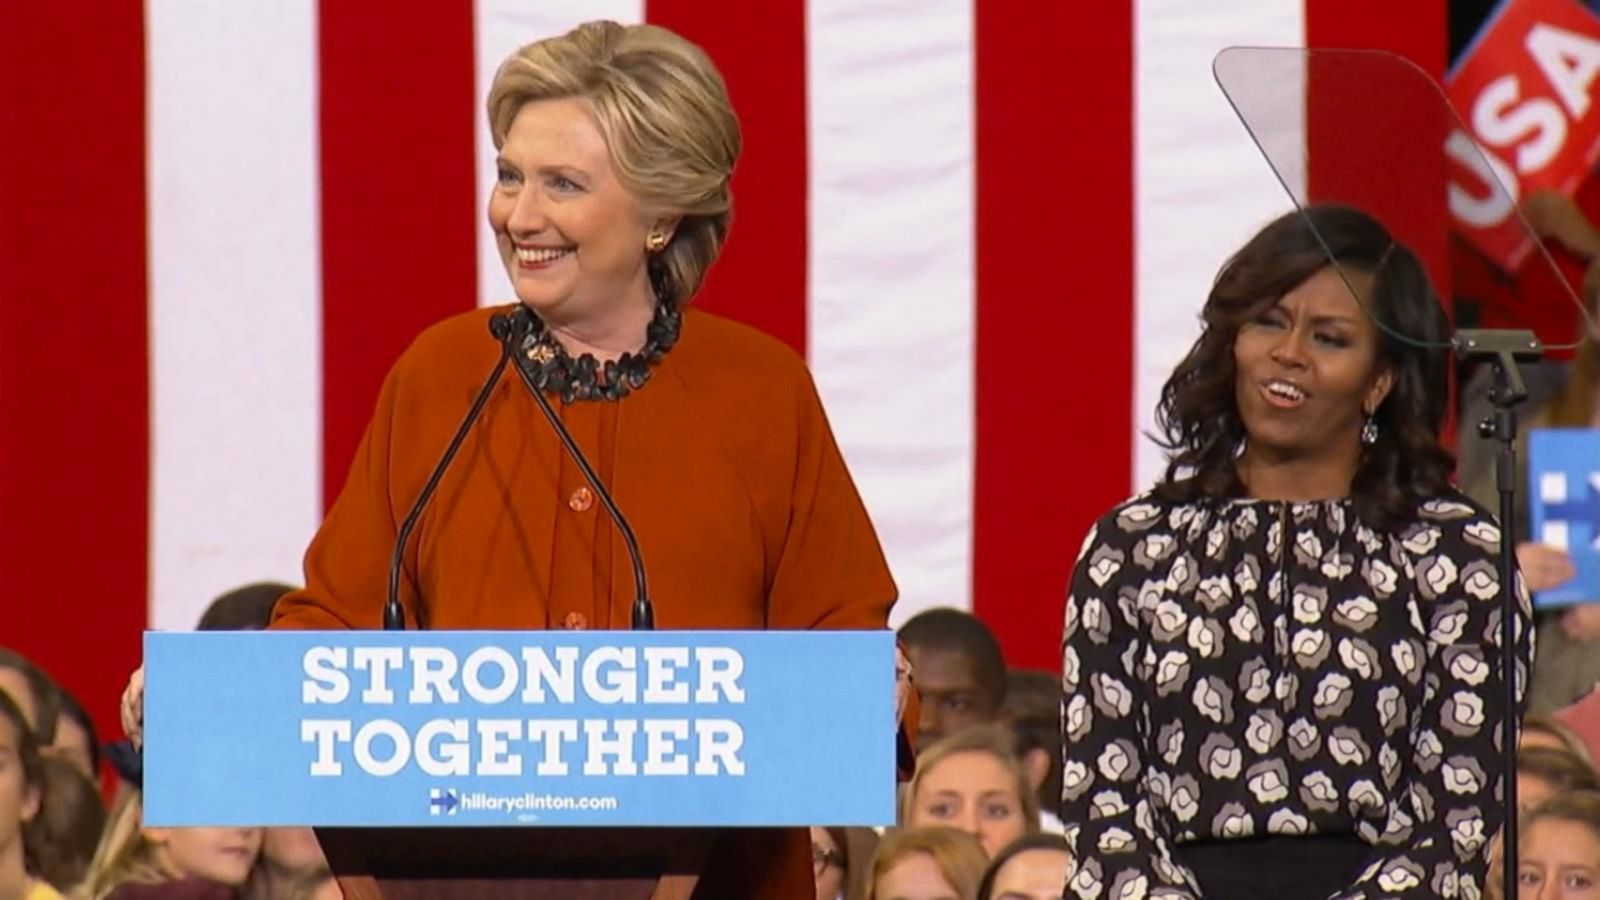 VIDEO: Hillary Clinton and Michelle Obama Bond Over the First Lady Experience on Campaign Trail